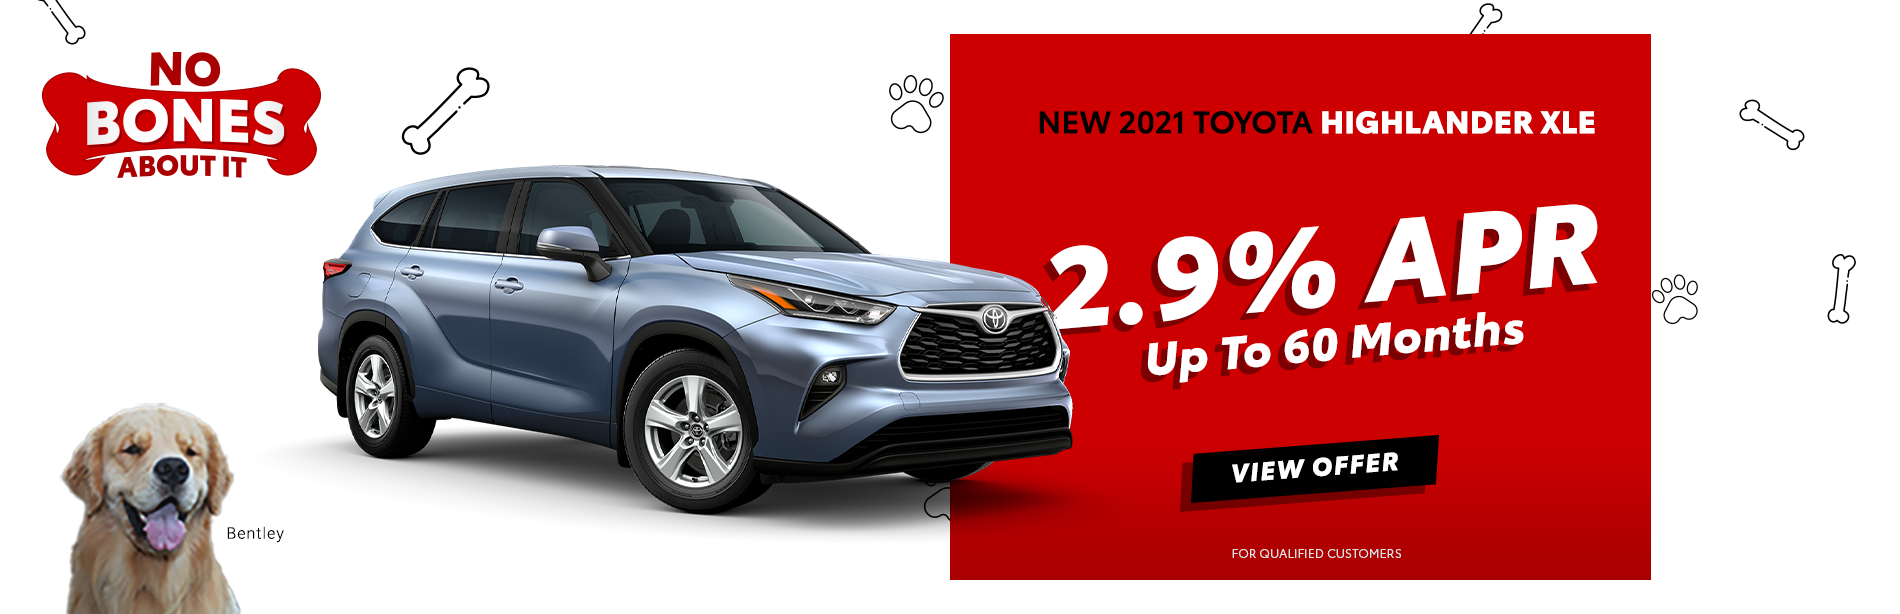 View Rochester Toyota Specials on new 2021 Highlander XLE models